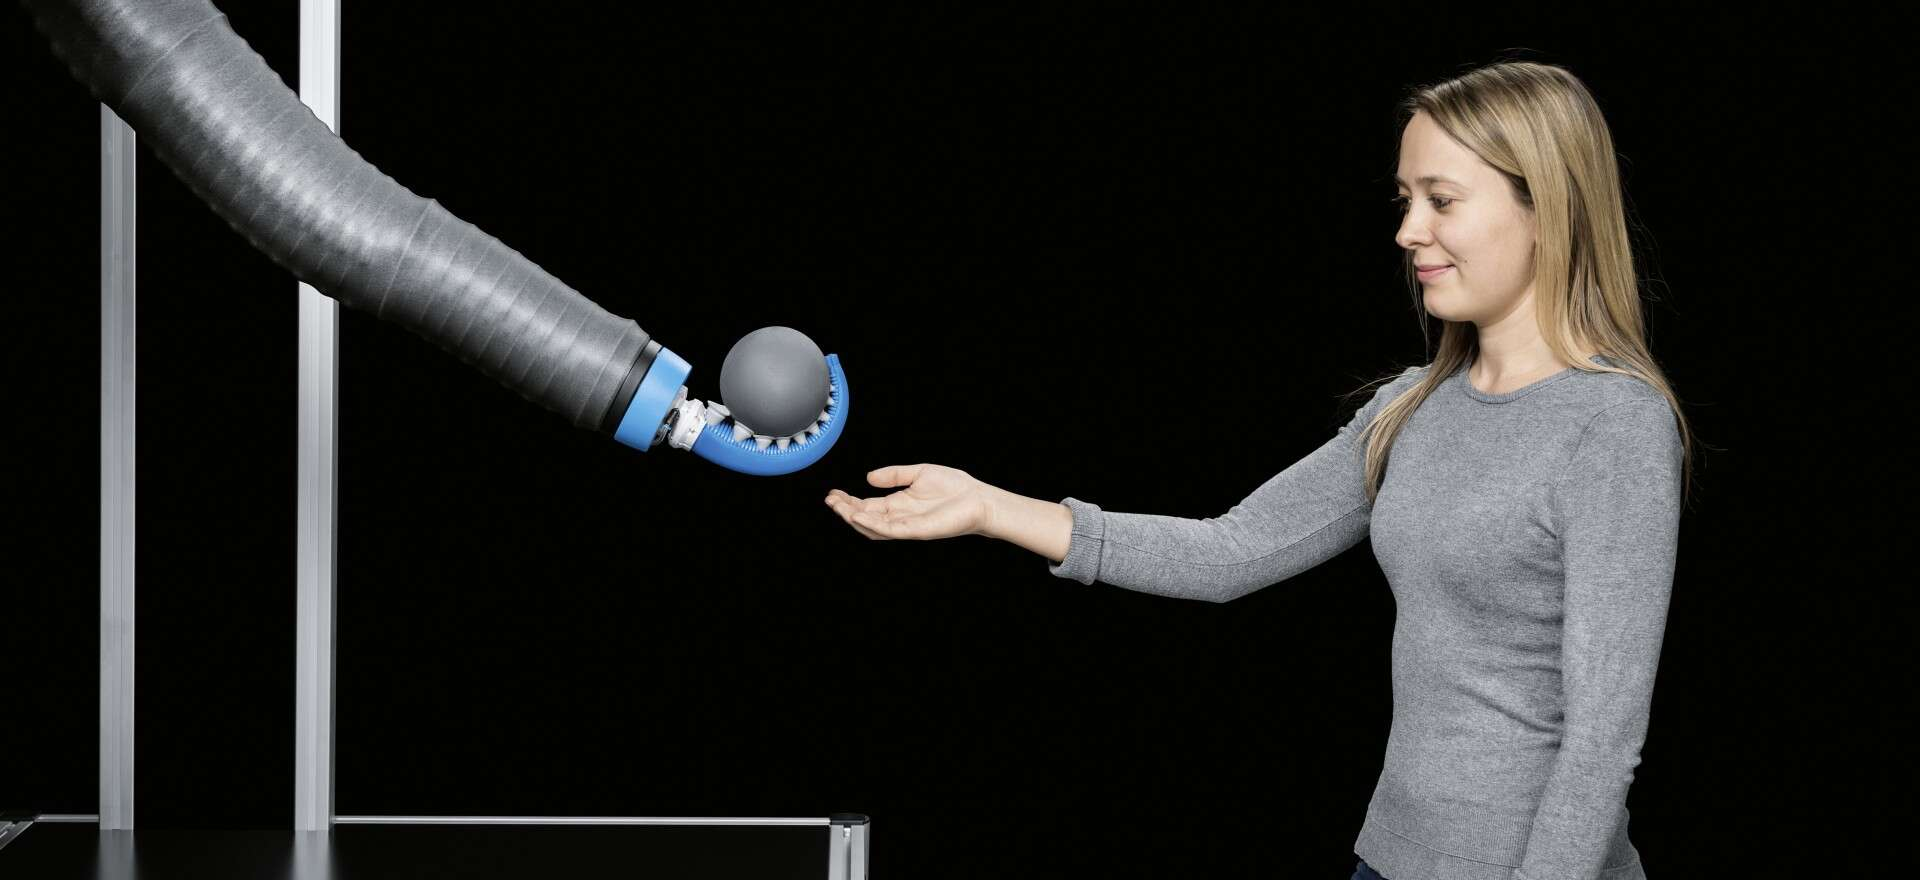 Festo BionicMotionRobot: lightweight robot with natural forms of movement